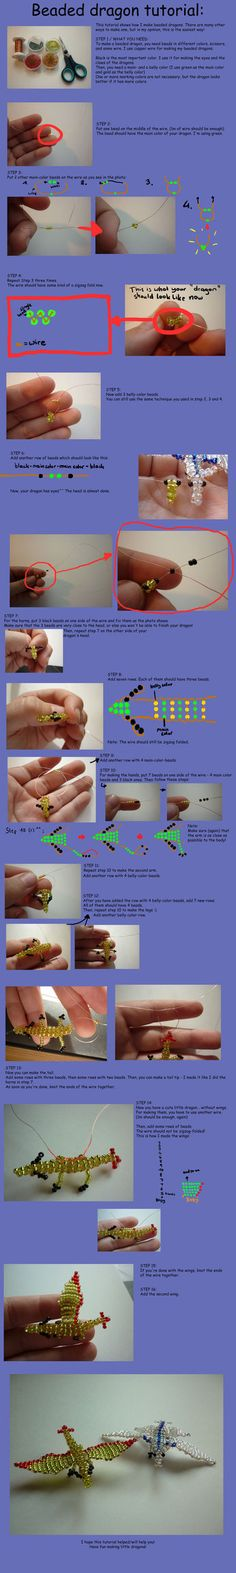 Beaded dragon tutorial by =NicosFriend on deviantART